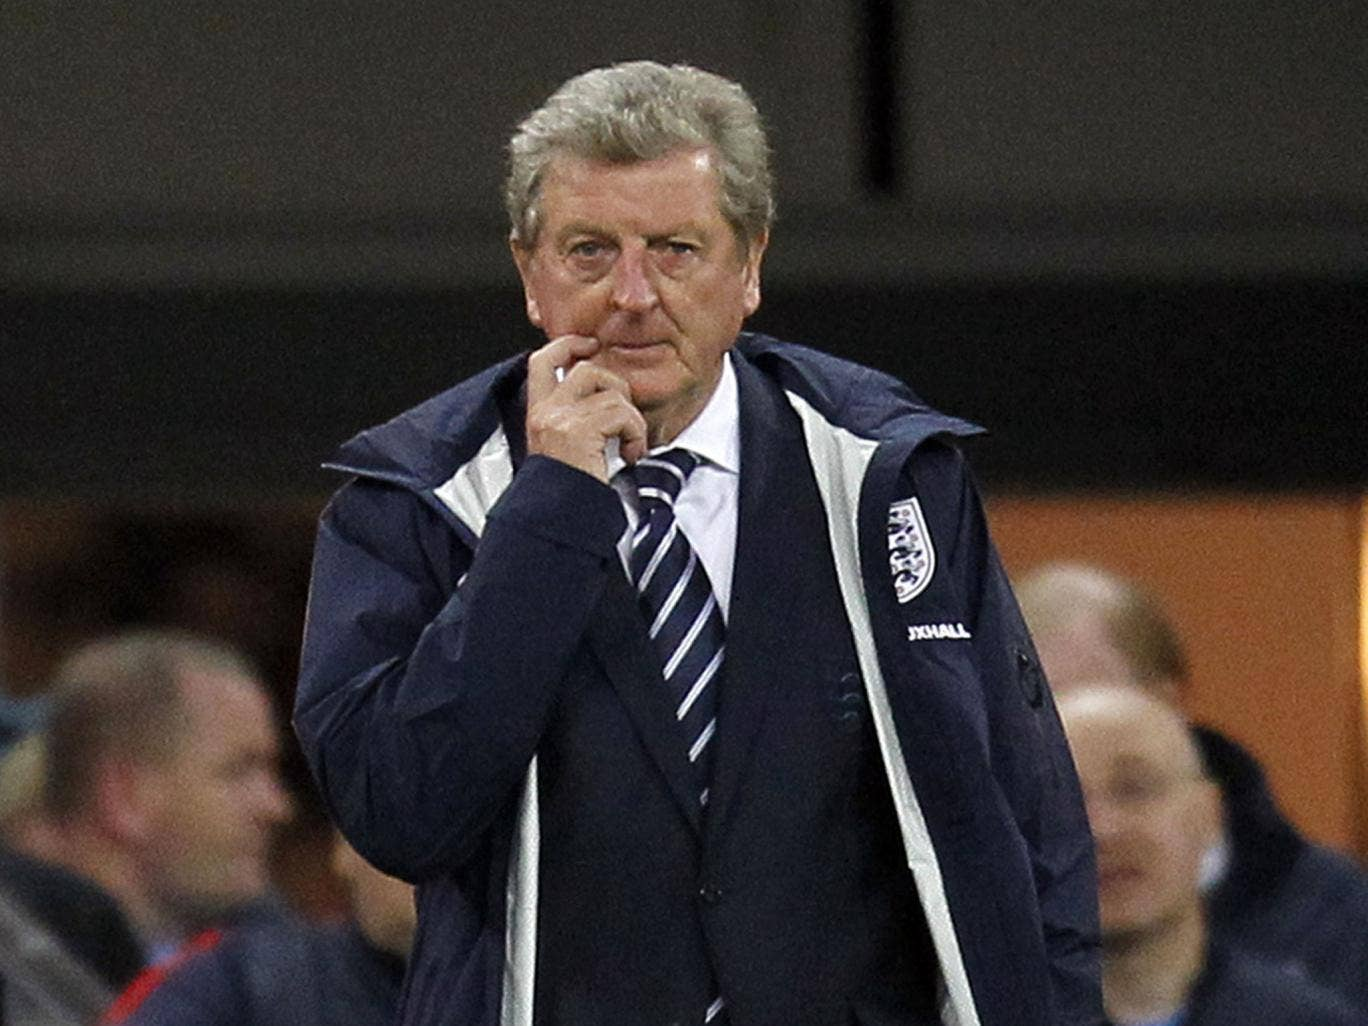 Roy Hodgson has received backing from Graham Taylor and Graeme Le Saux